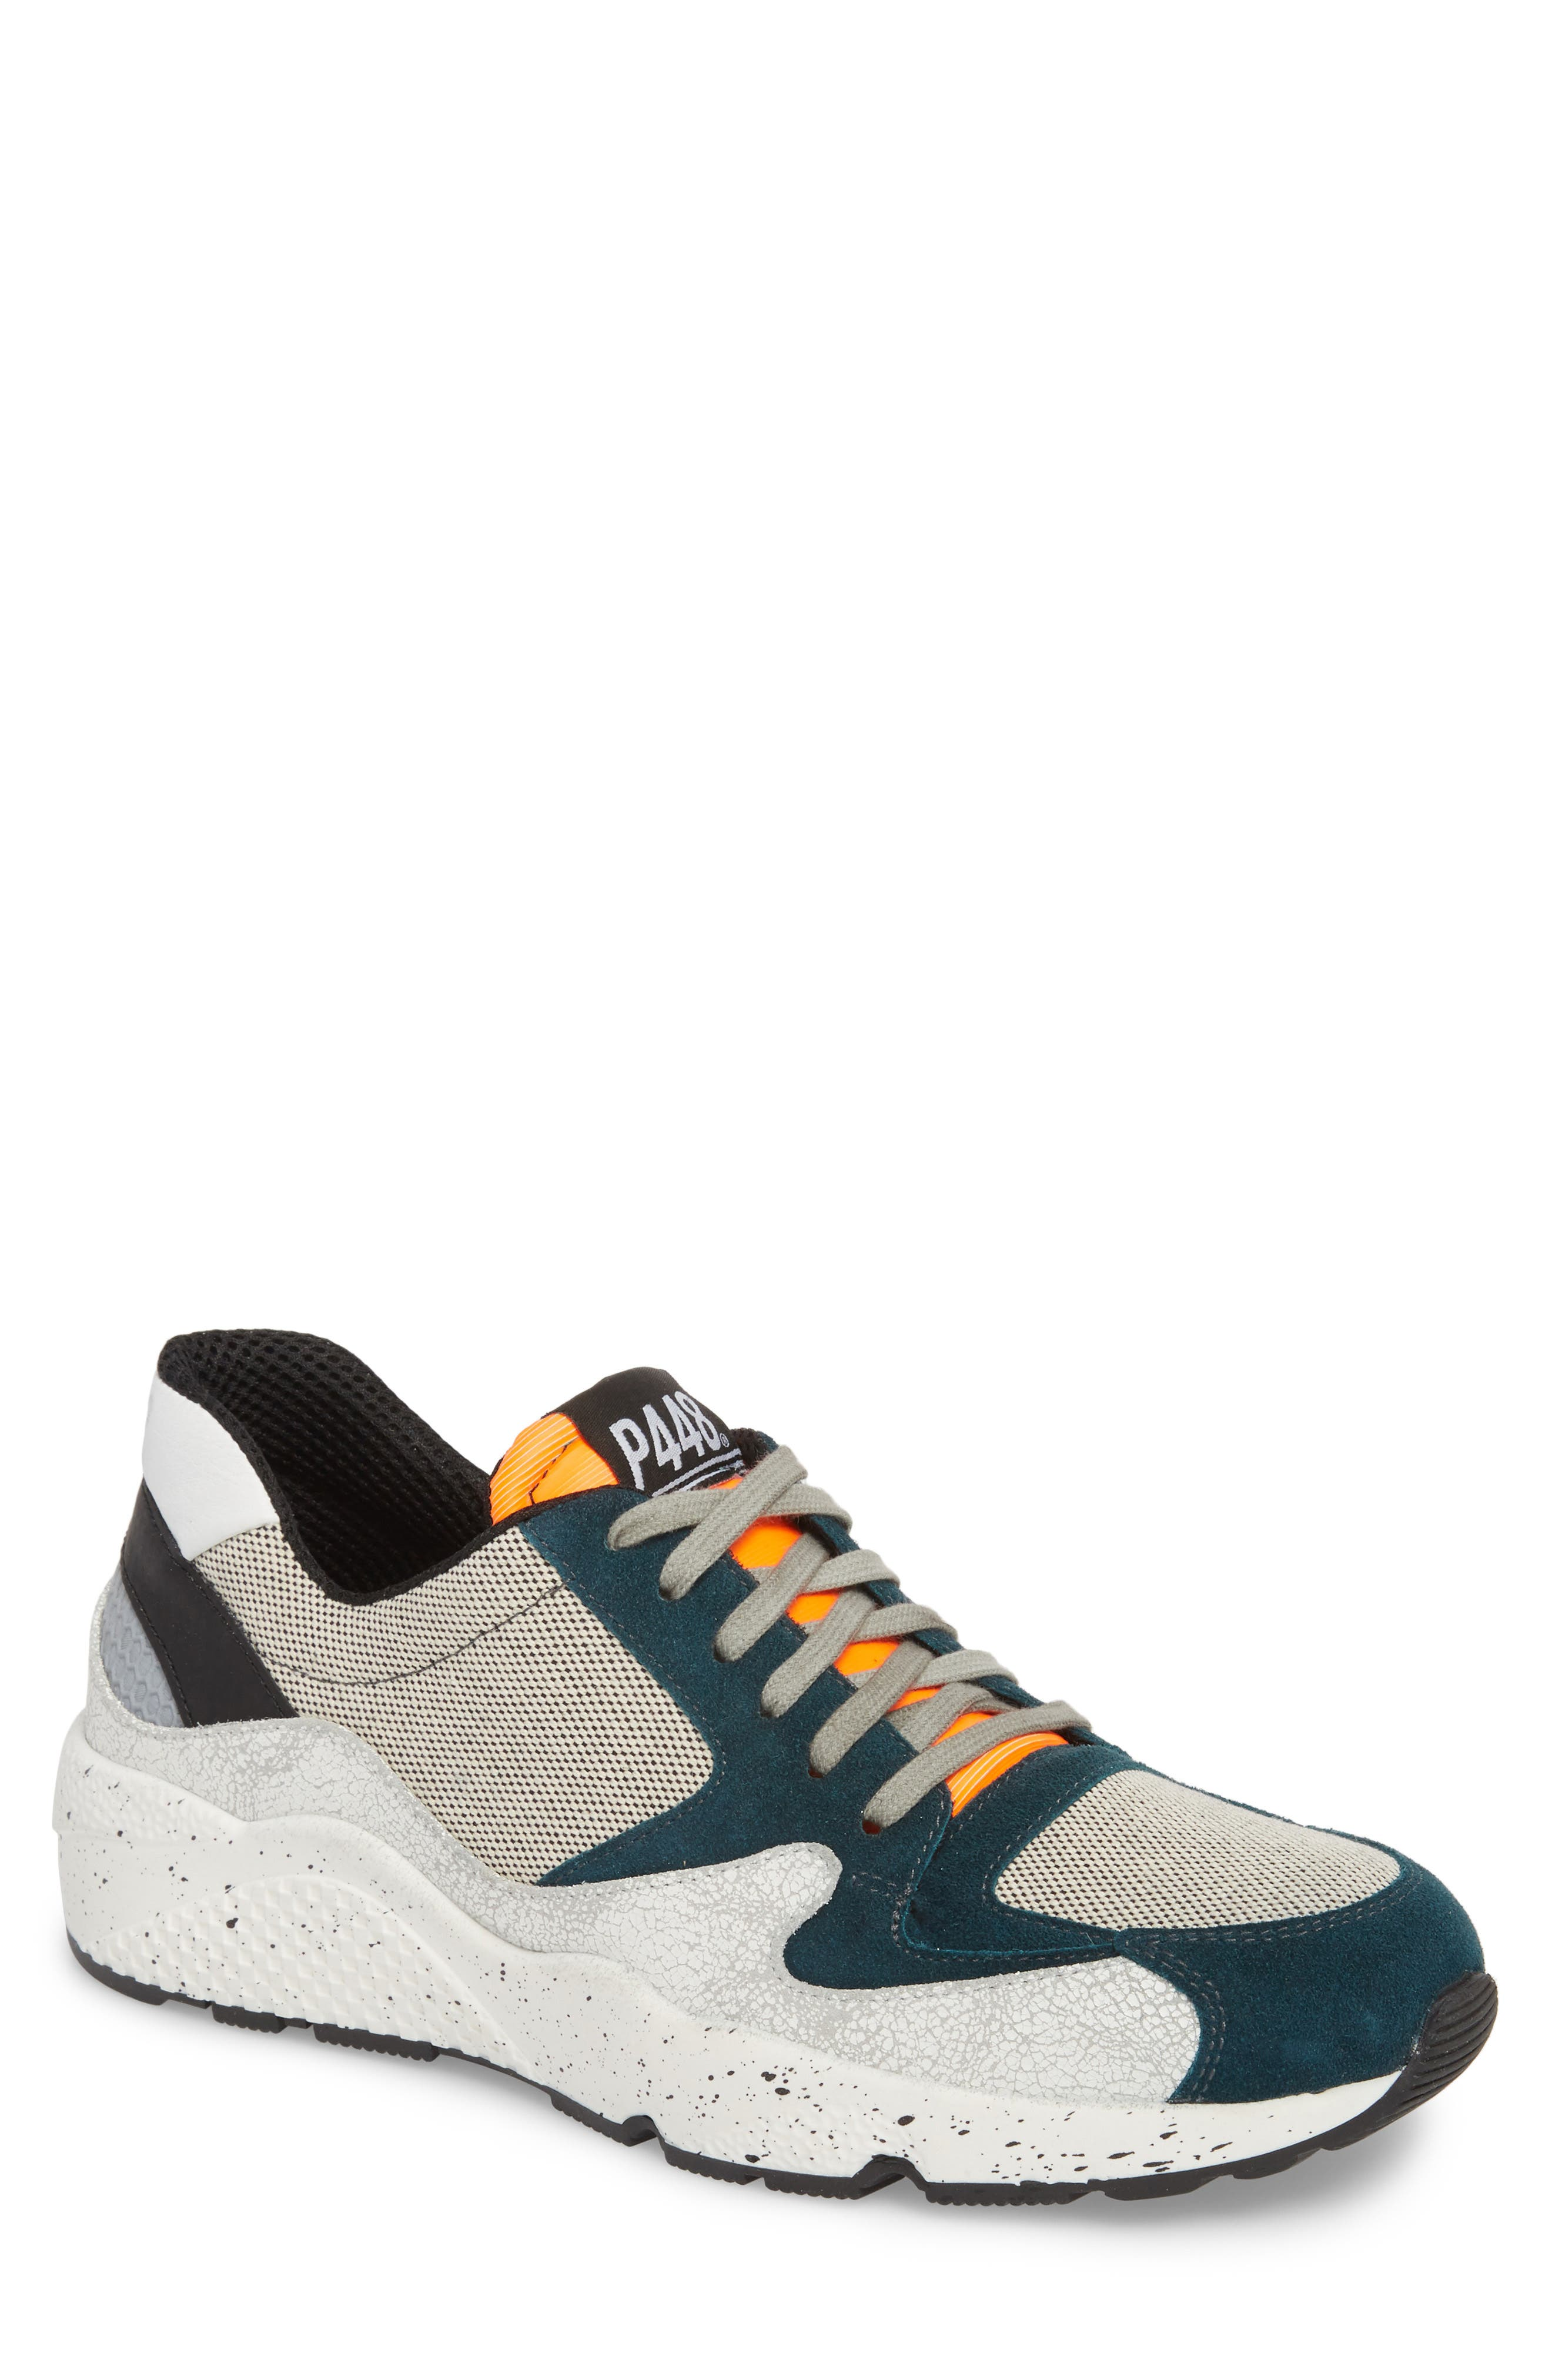 America Low Top Sneaker,                         Main,                         color, WHITE